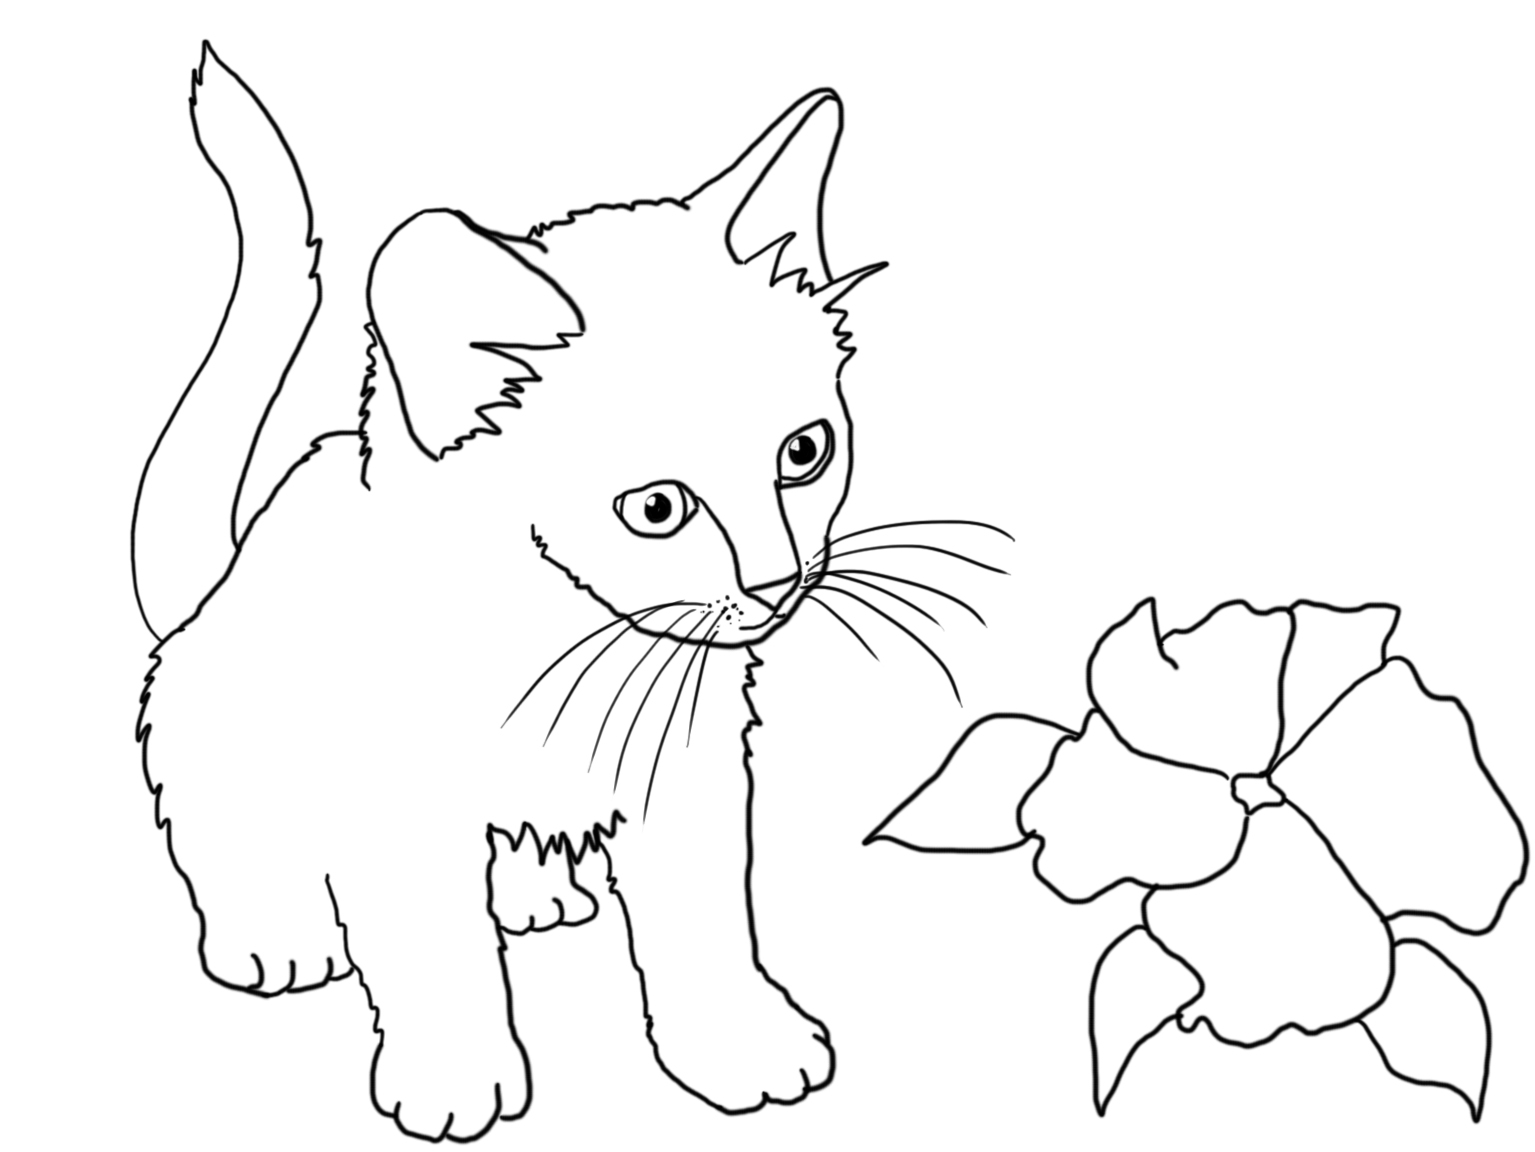 coloring page with kitten looking at a flower